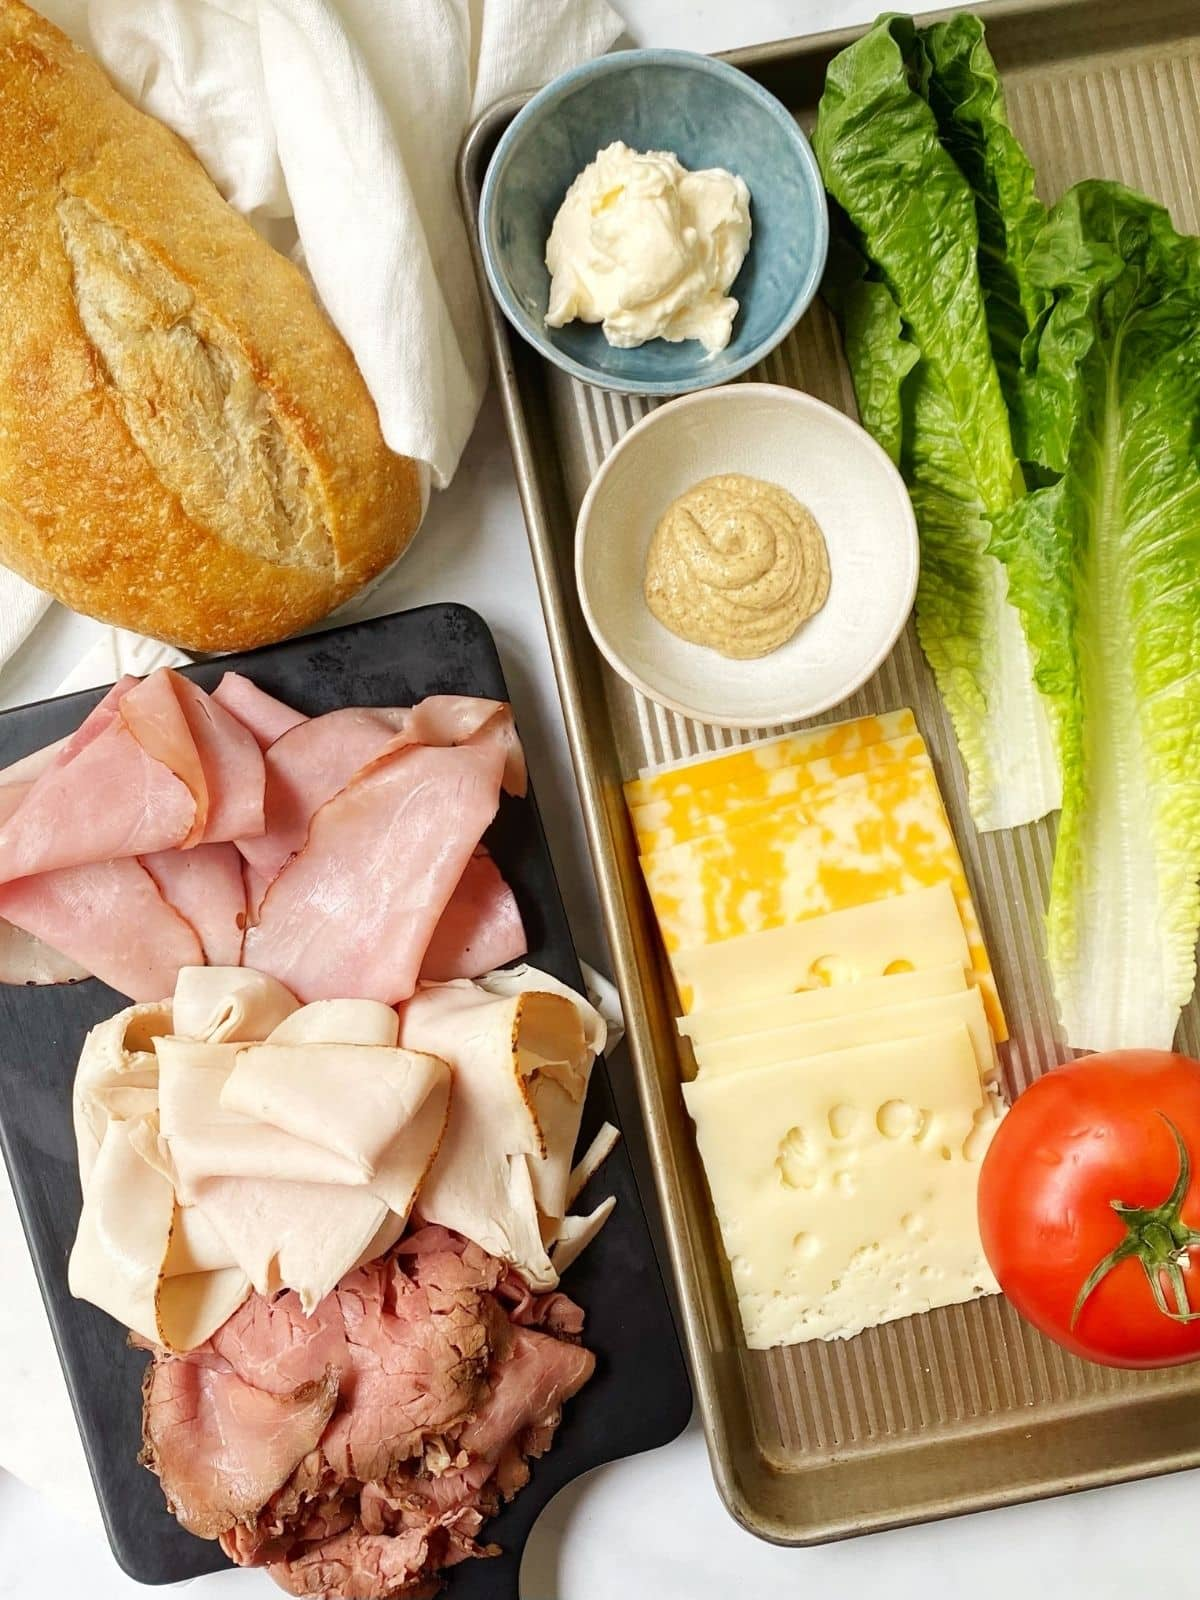 array of ingredients - bread, meat, cheese, lettuce, tomatoes, mayo and mustard